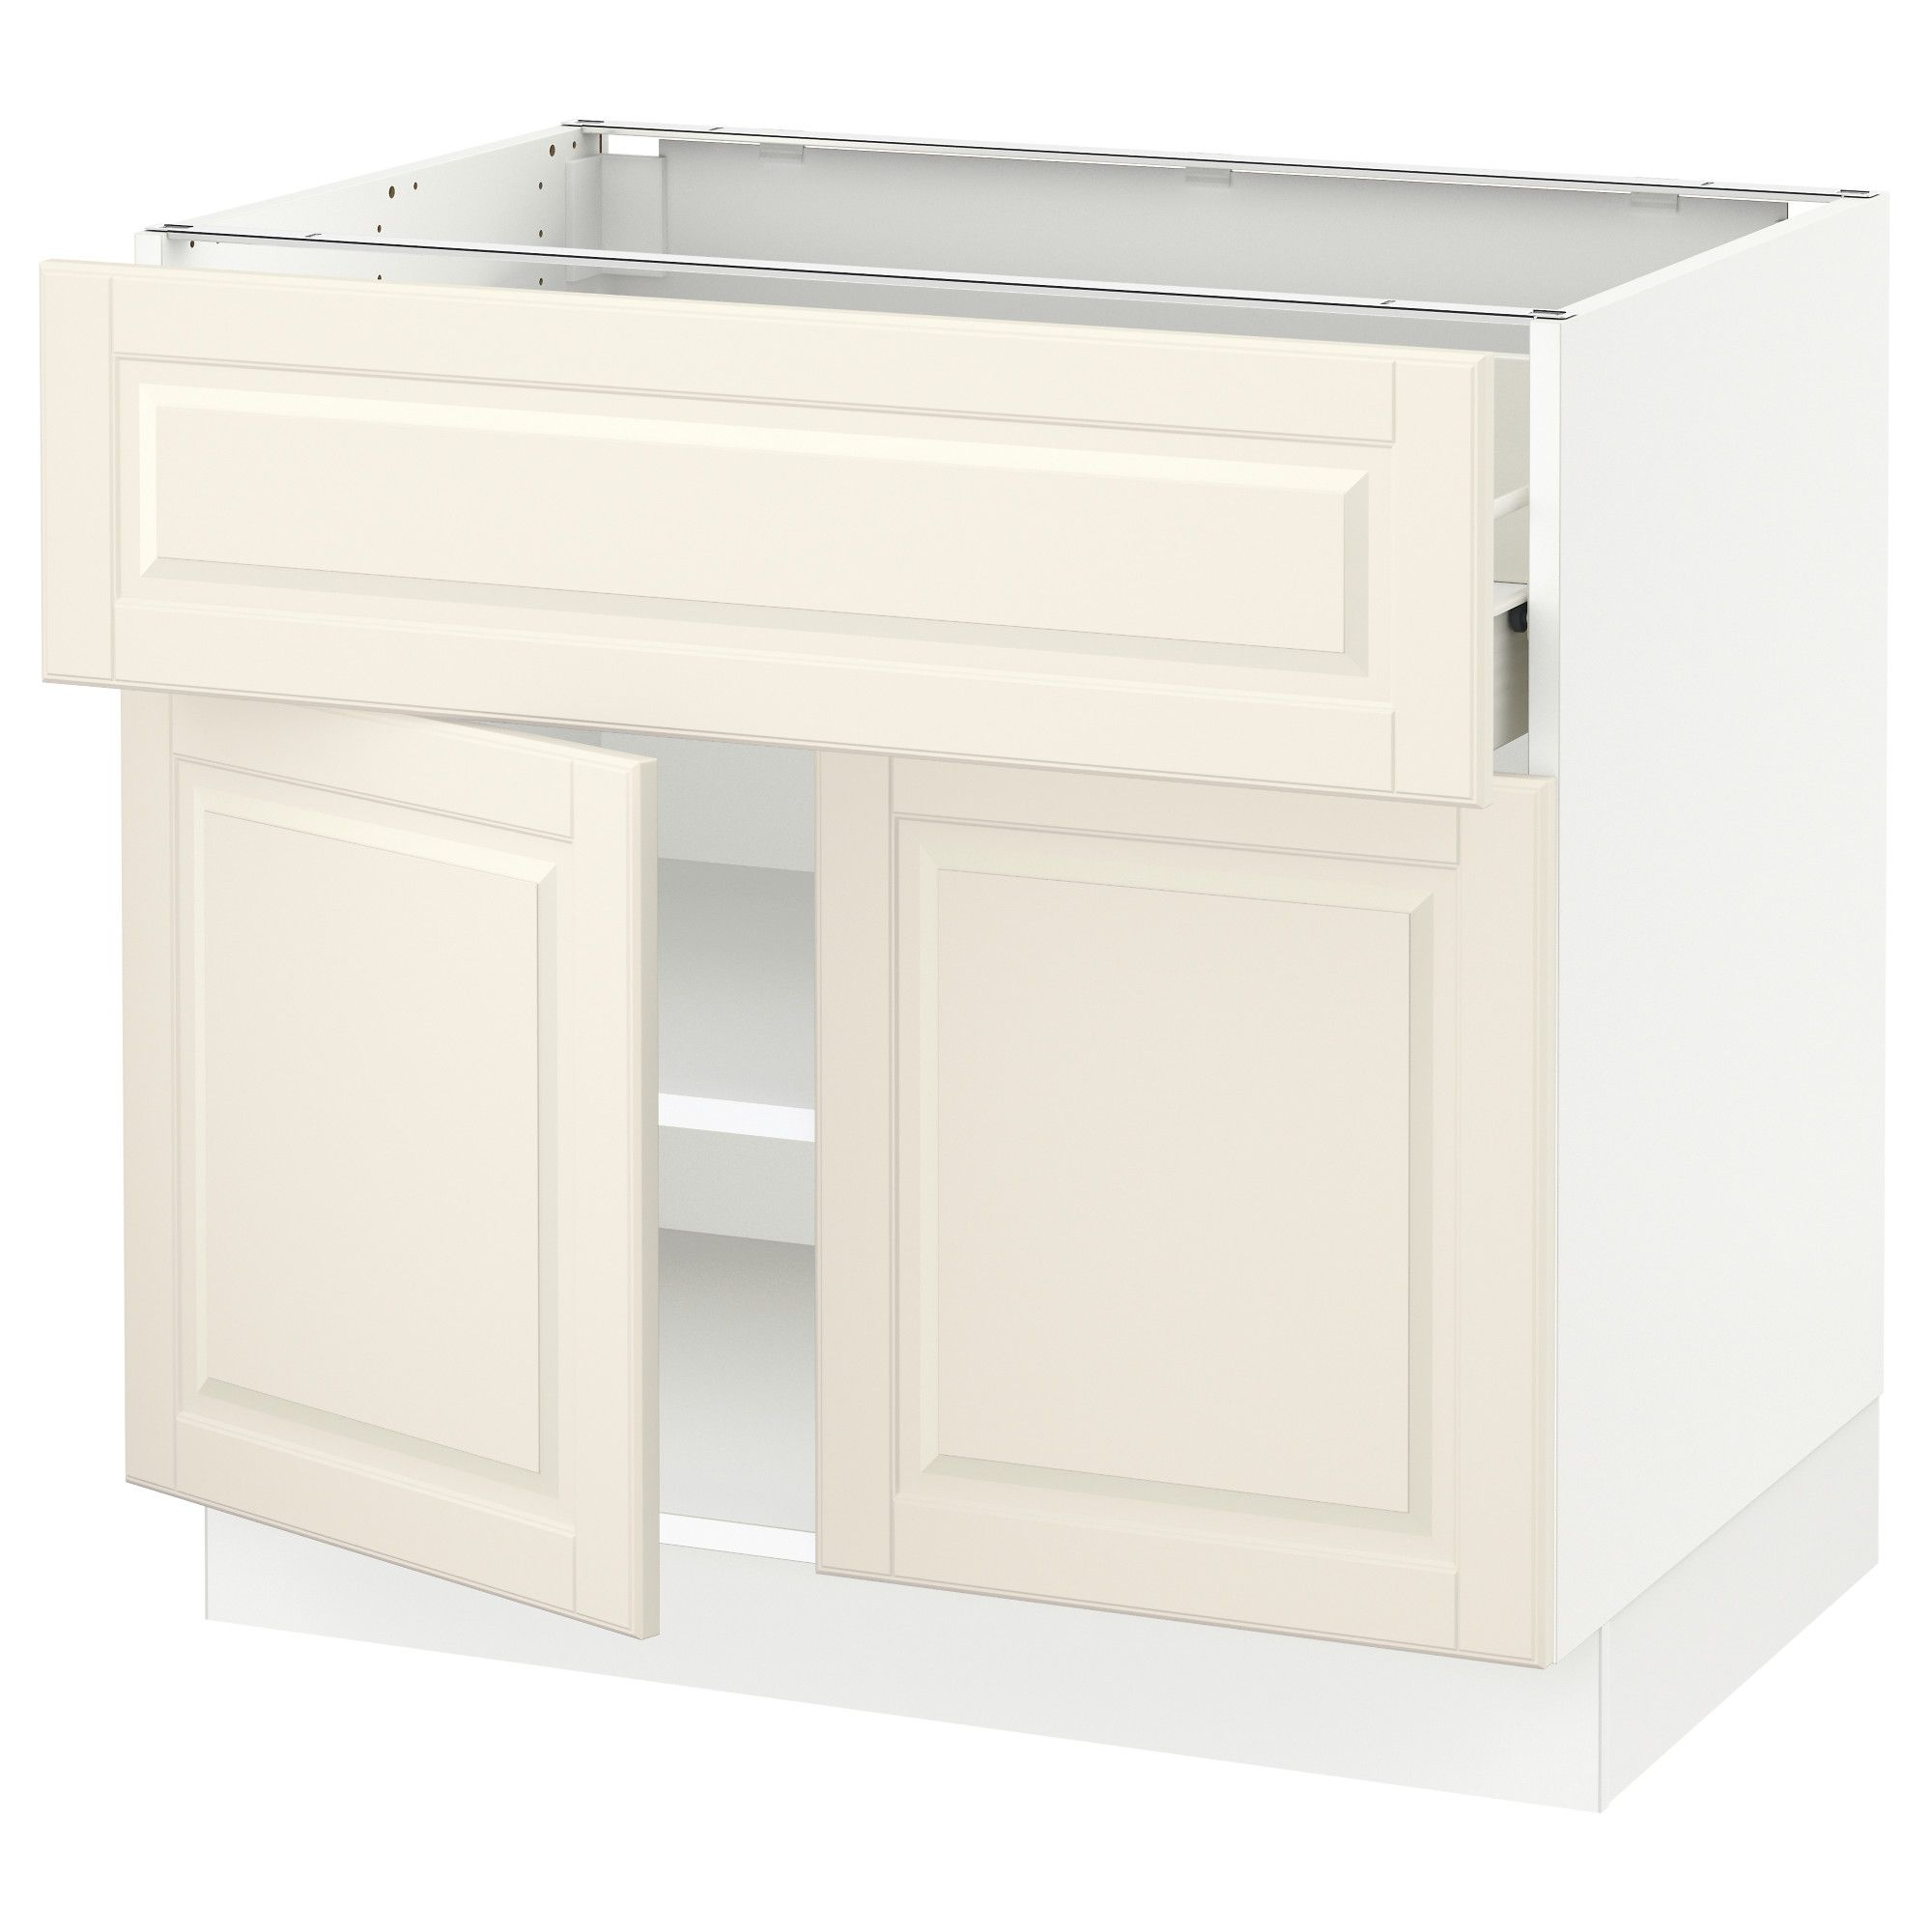 cliqstudios shaker spice drawers contemporary kitchen base painted door cabinet drawer rockford det with linen cabinets